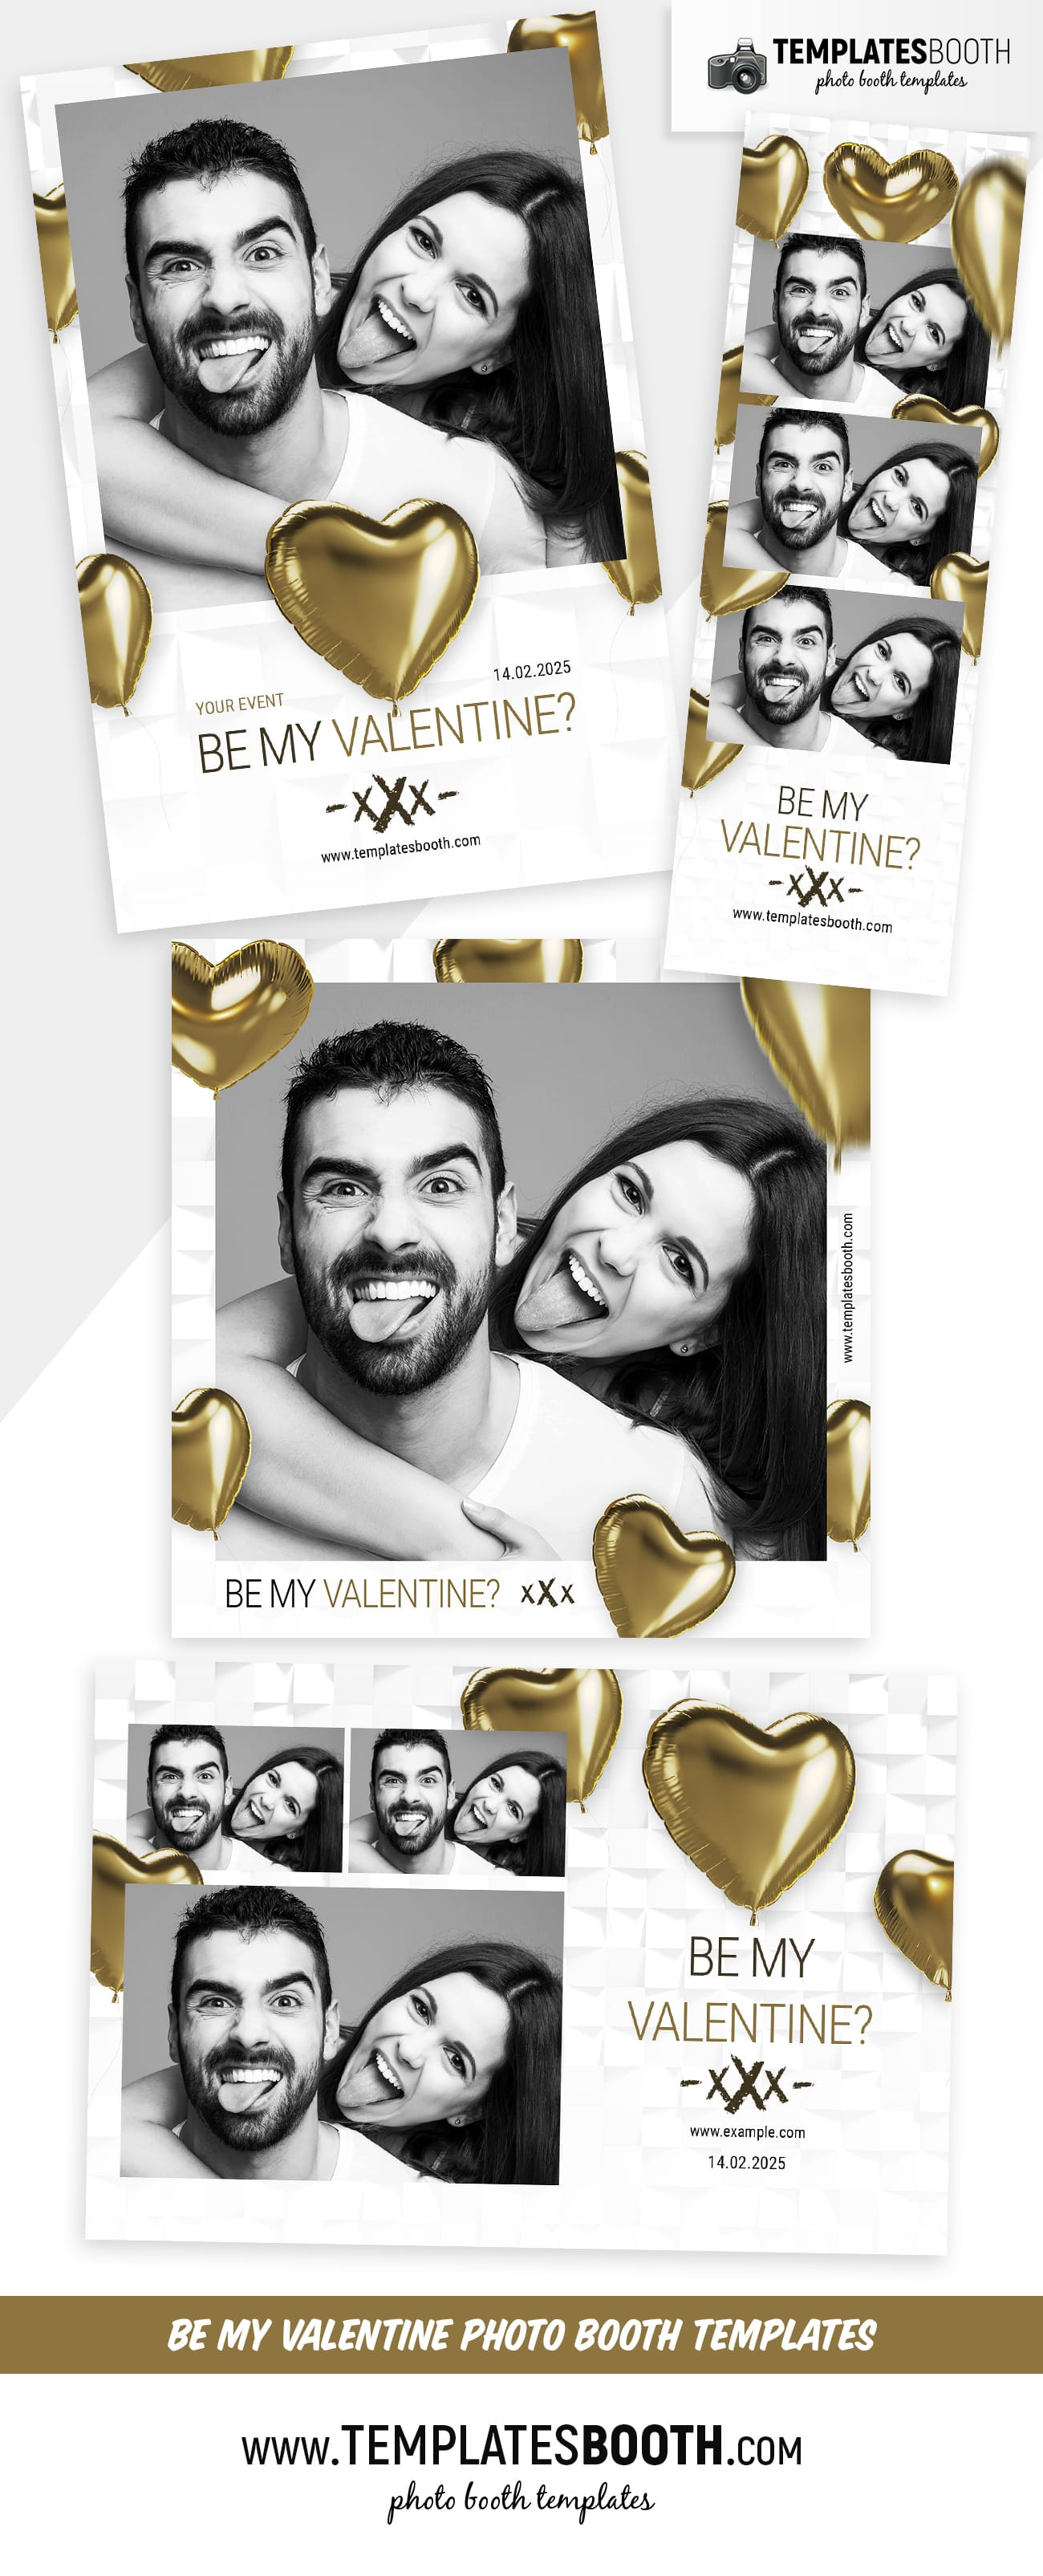 Be My Valentine Photo Booth Template (full preview)